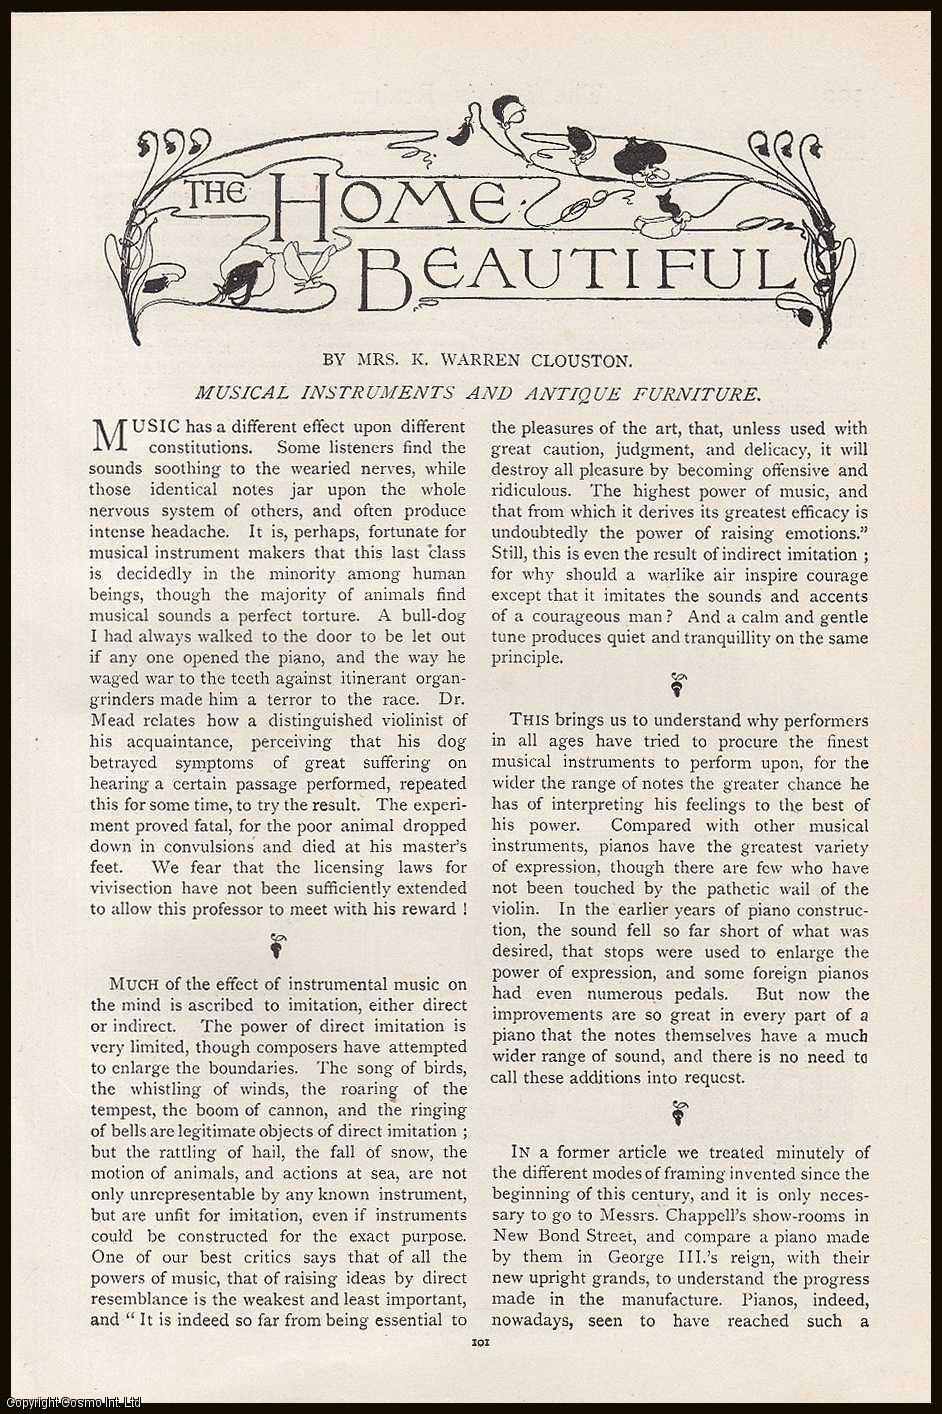 CLOUSTON, MRS. K. WARREN - Messrs. Chappell's Show-Rooms: Musical Instruments (Piano) and Antique Furniture: The Home Beautiful. An original article from the Lady's Realm 1898-99.